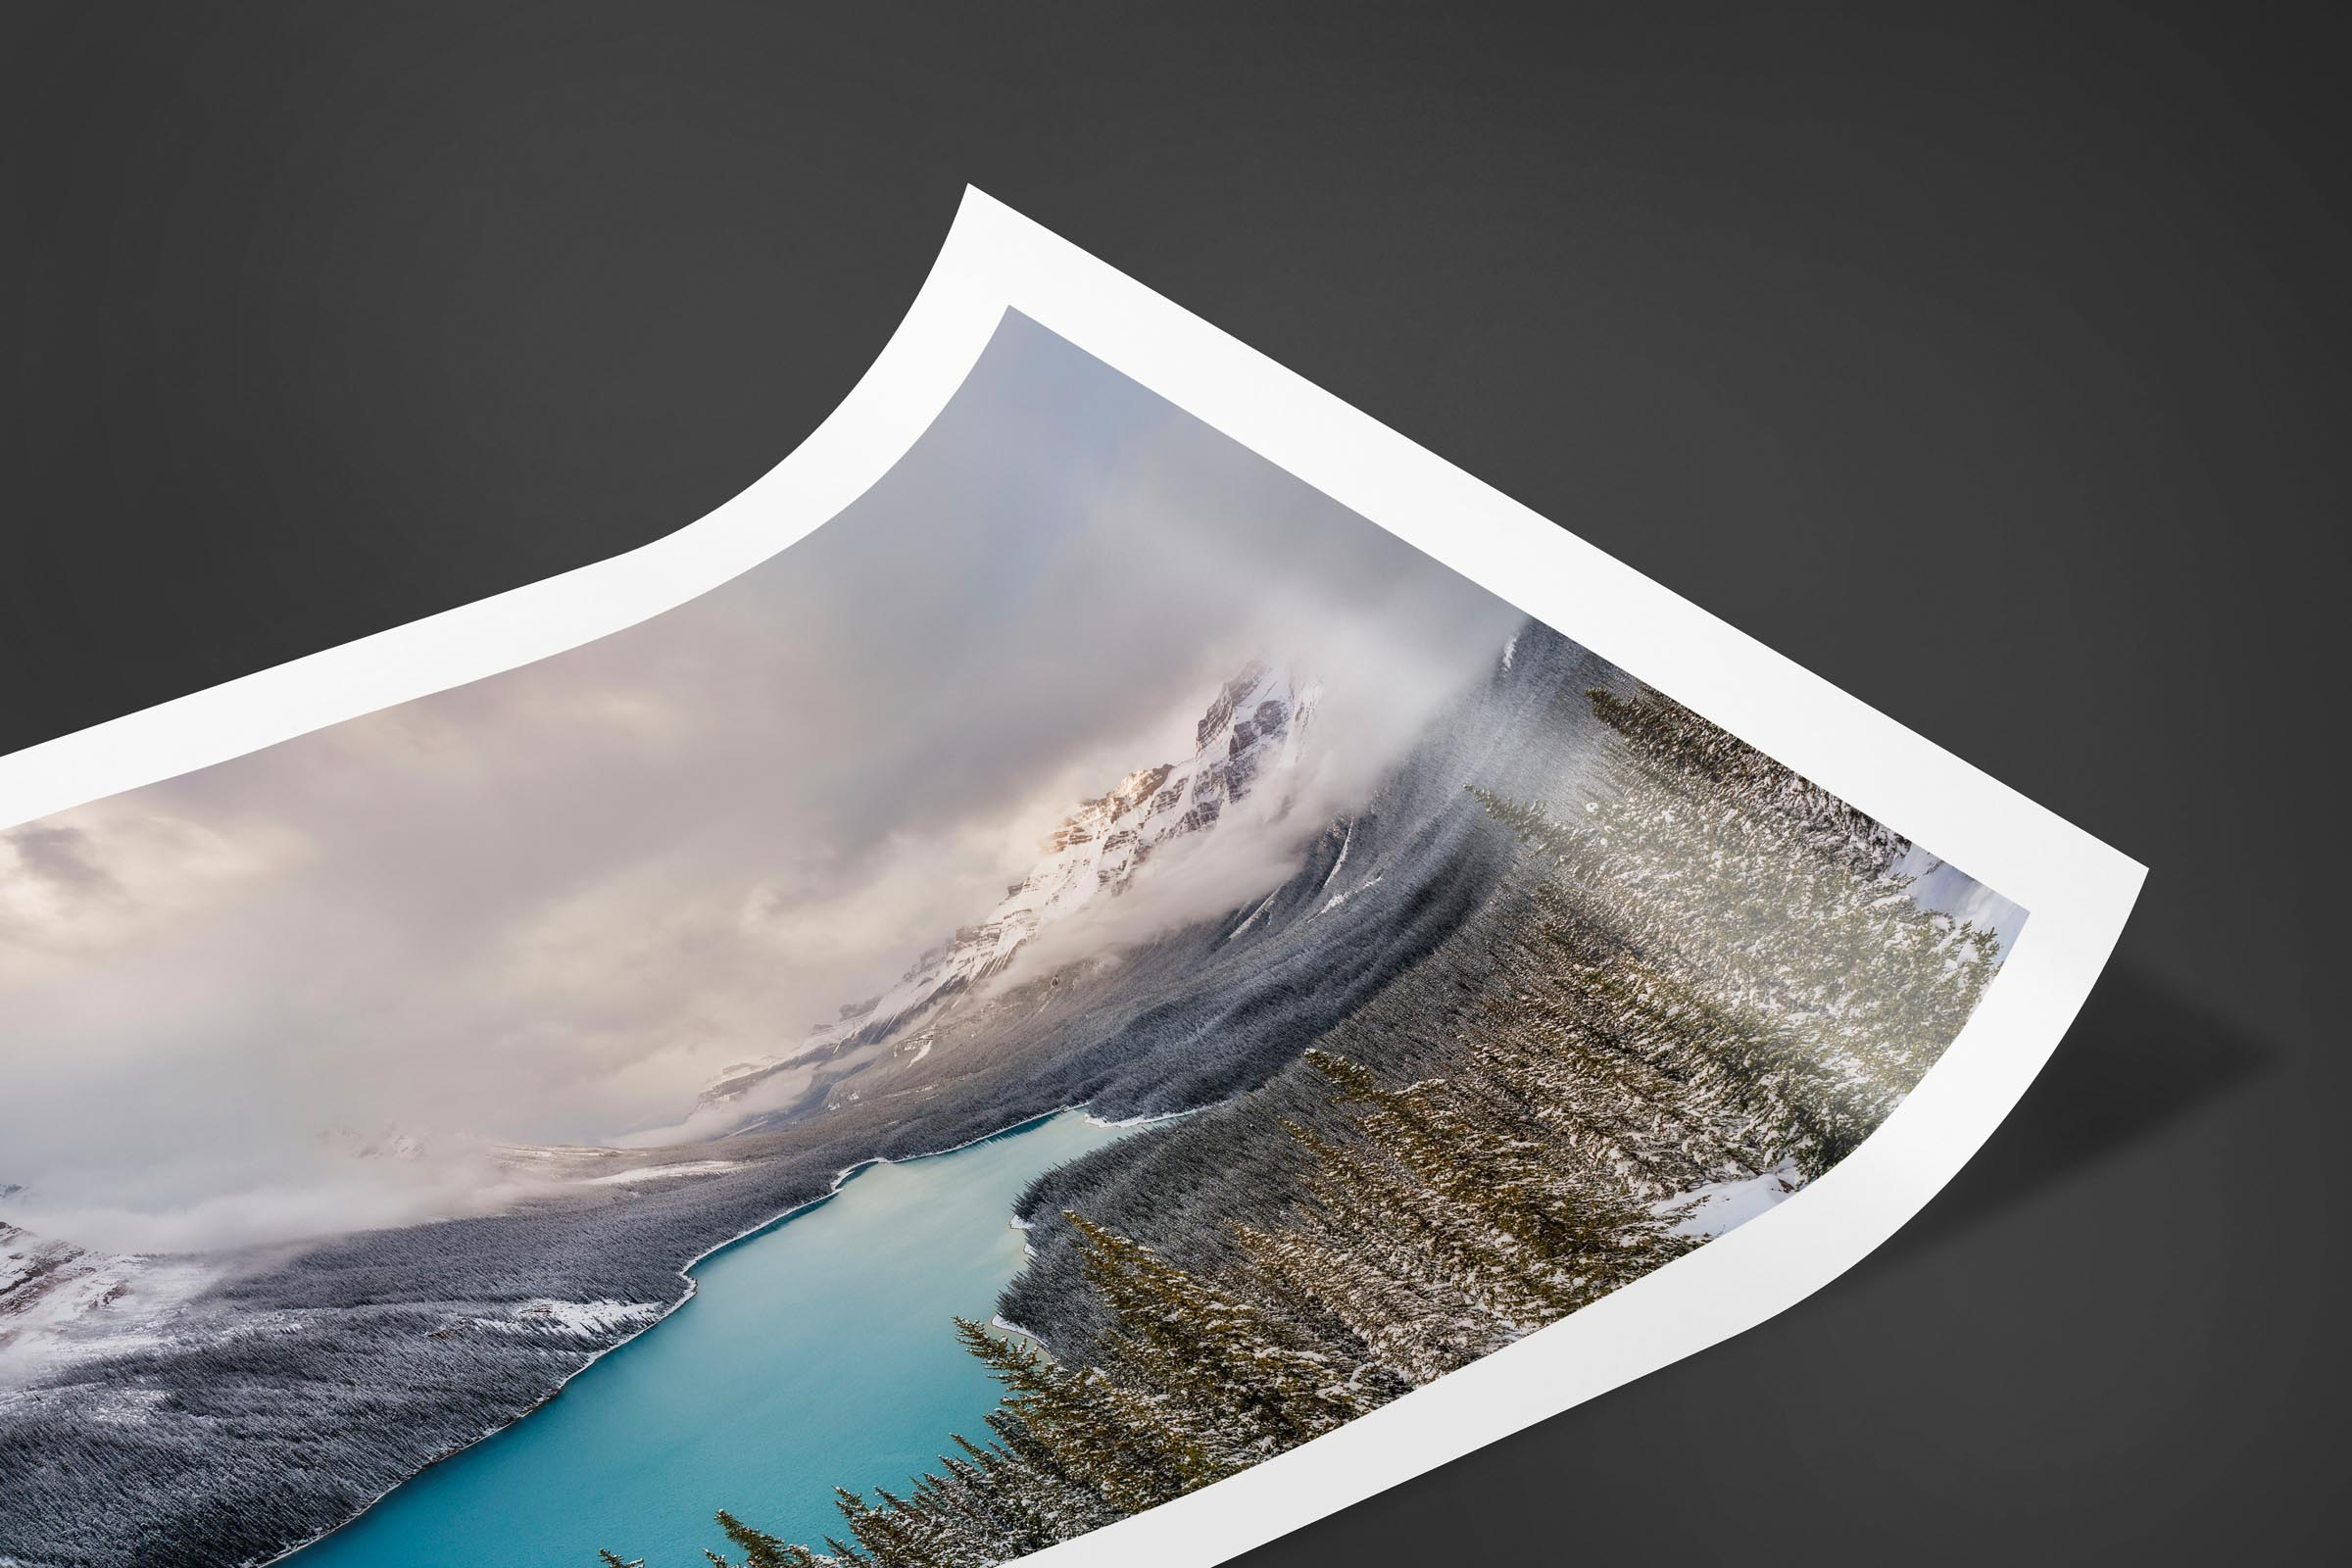 Fine art limited edition print of Peyto Lake in Banff, Canada by Brent Goldman Photography